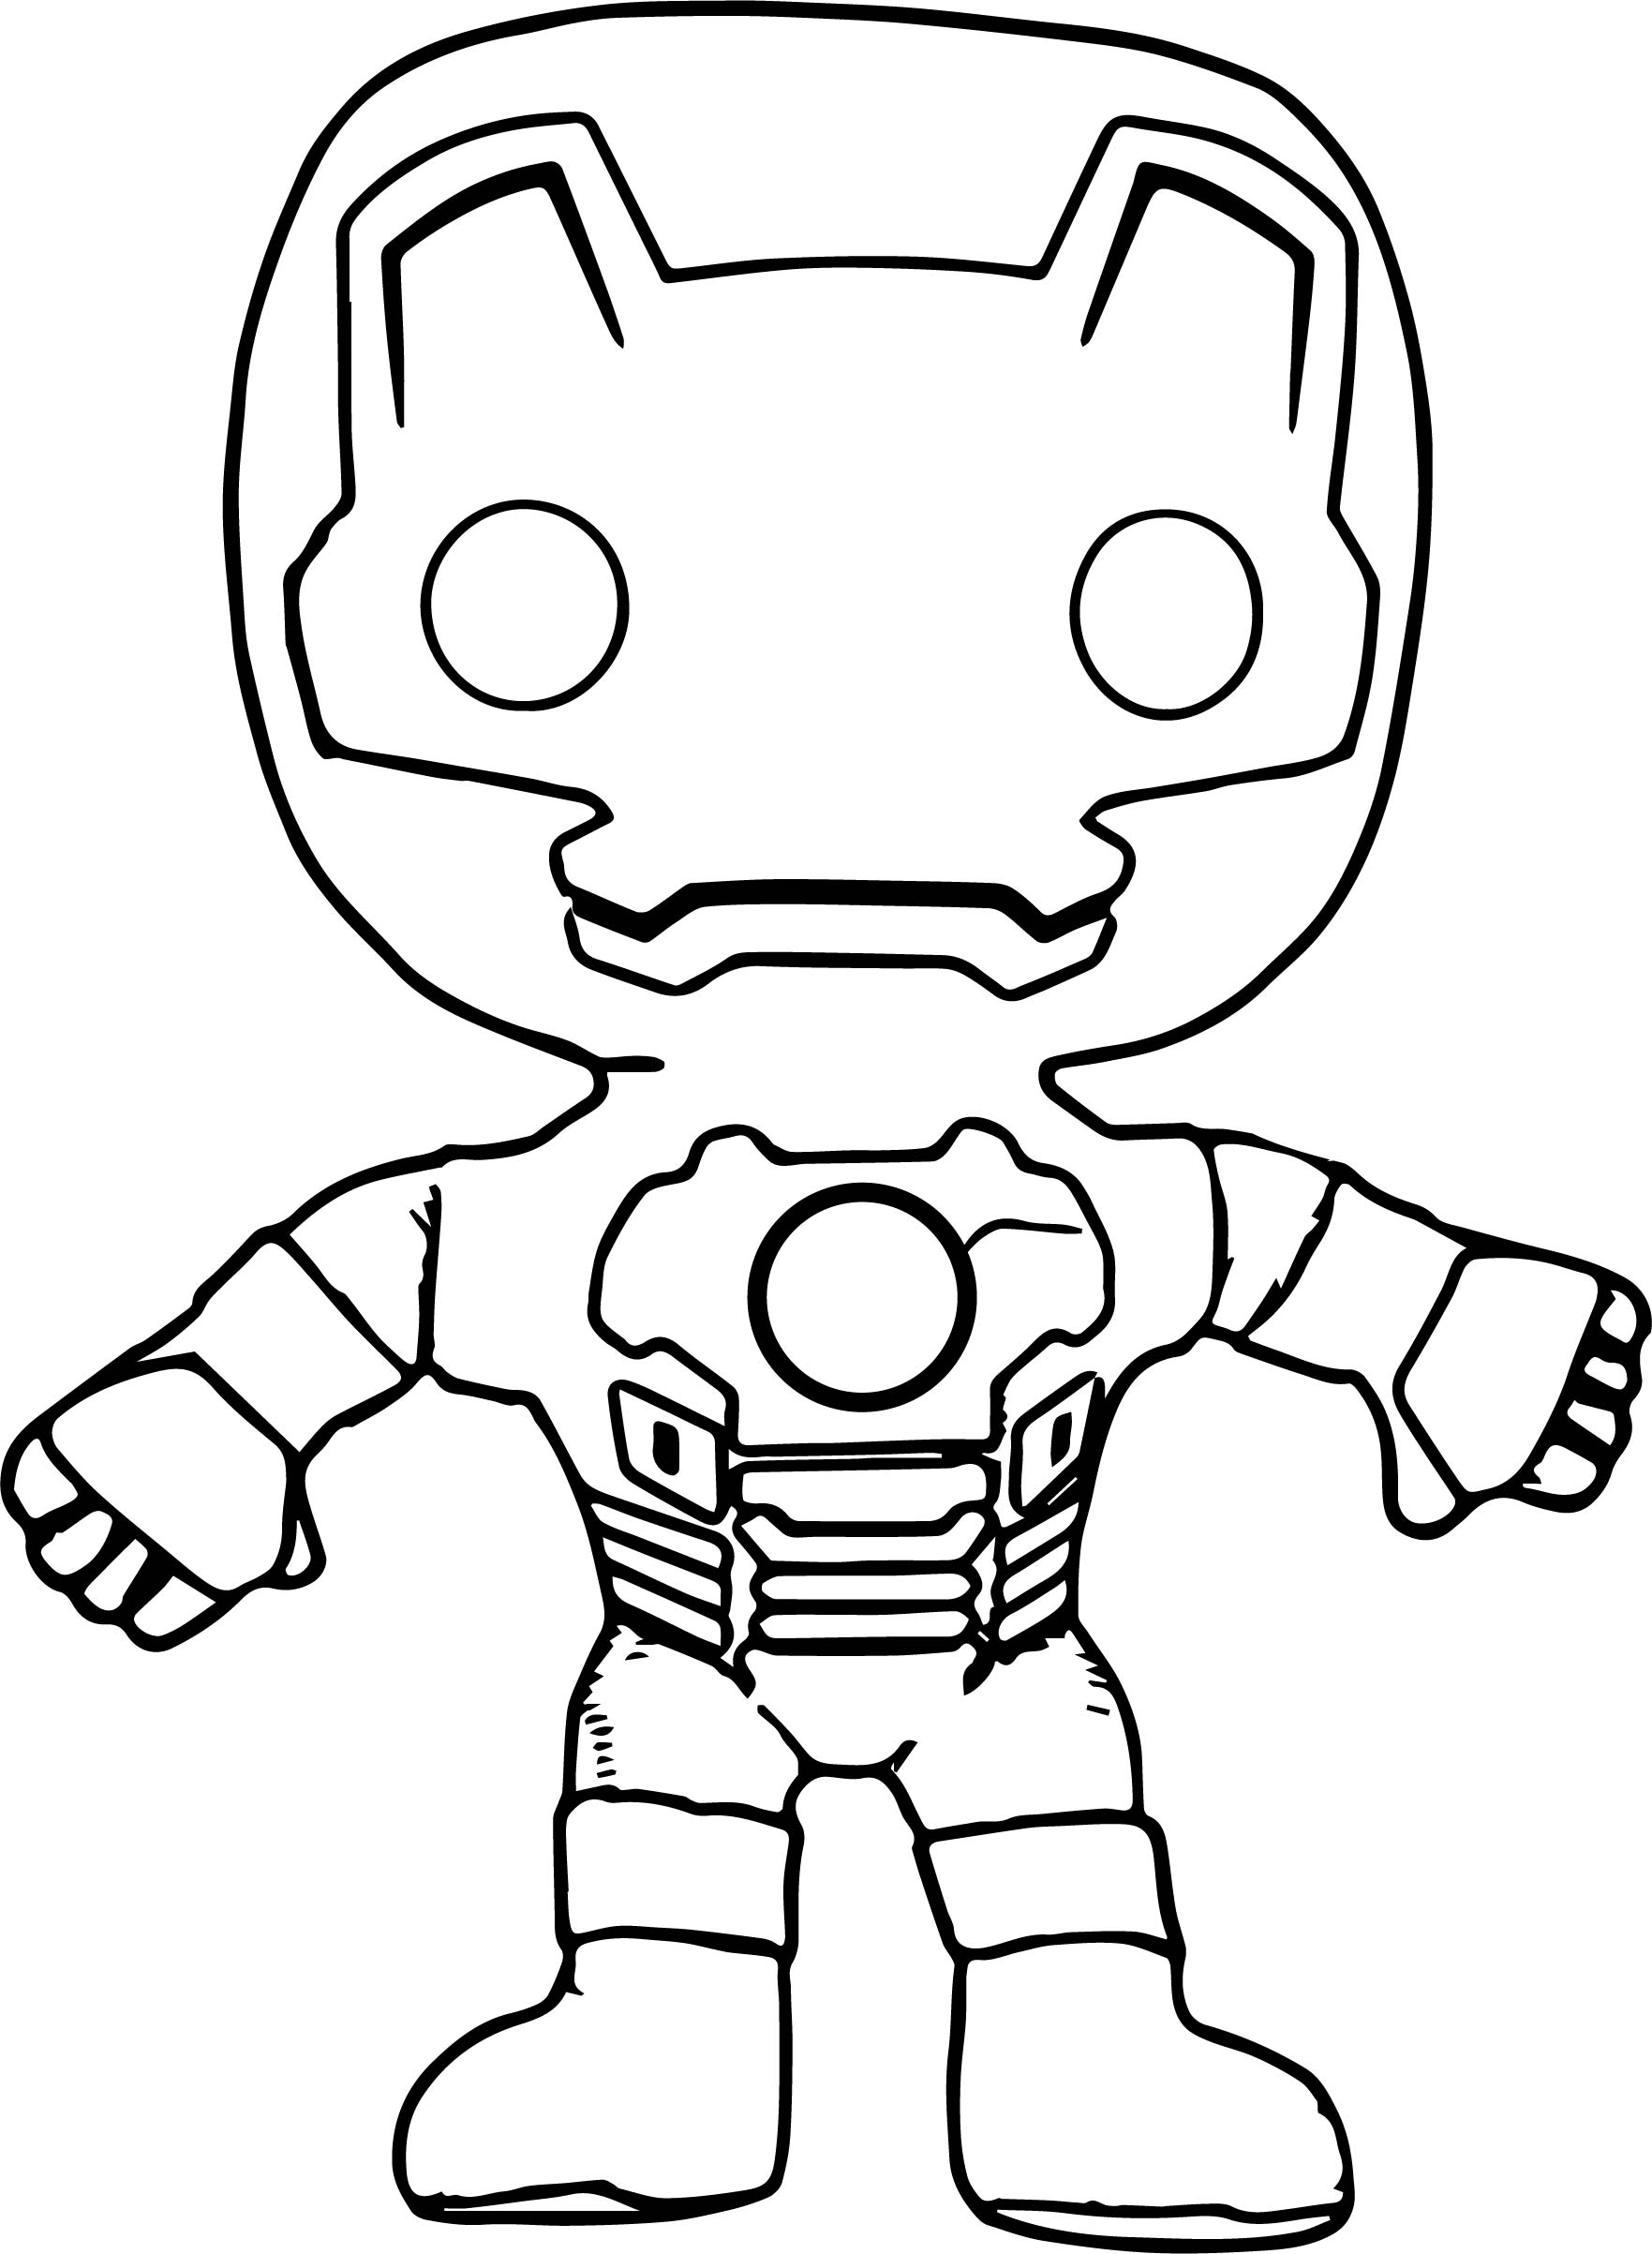 Iron Head Coloring Pages